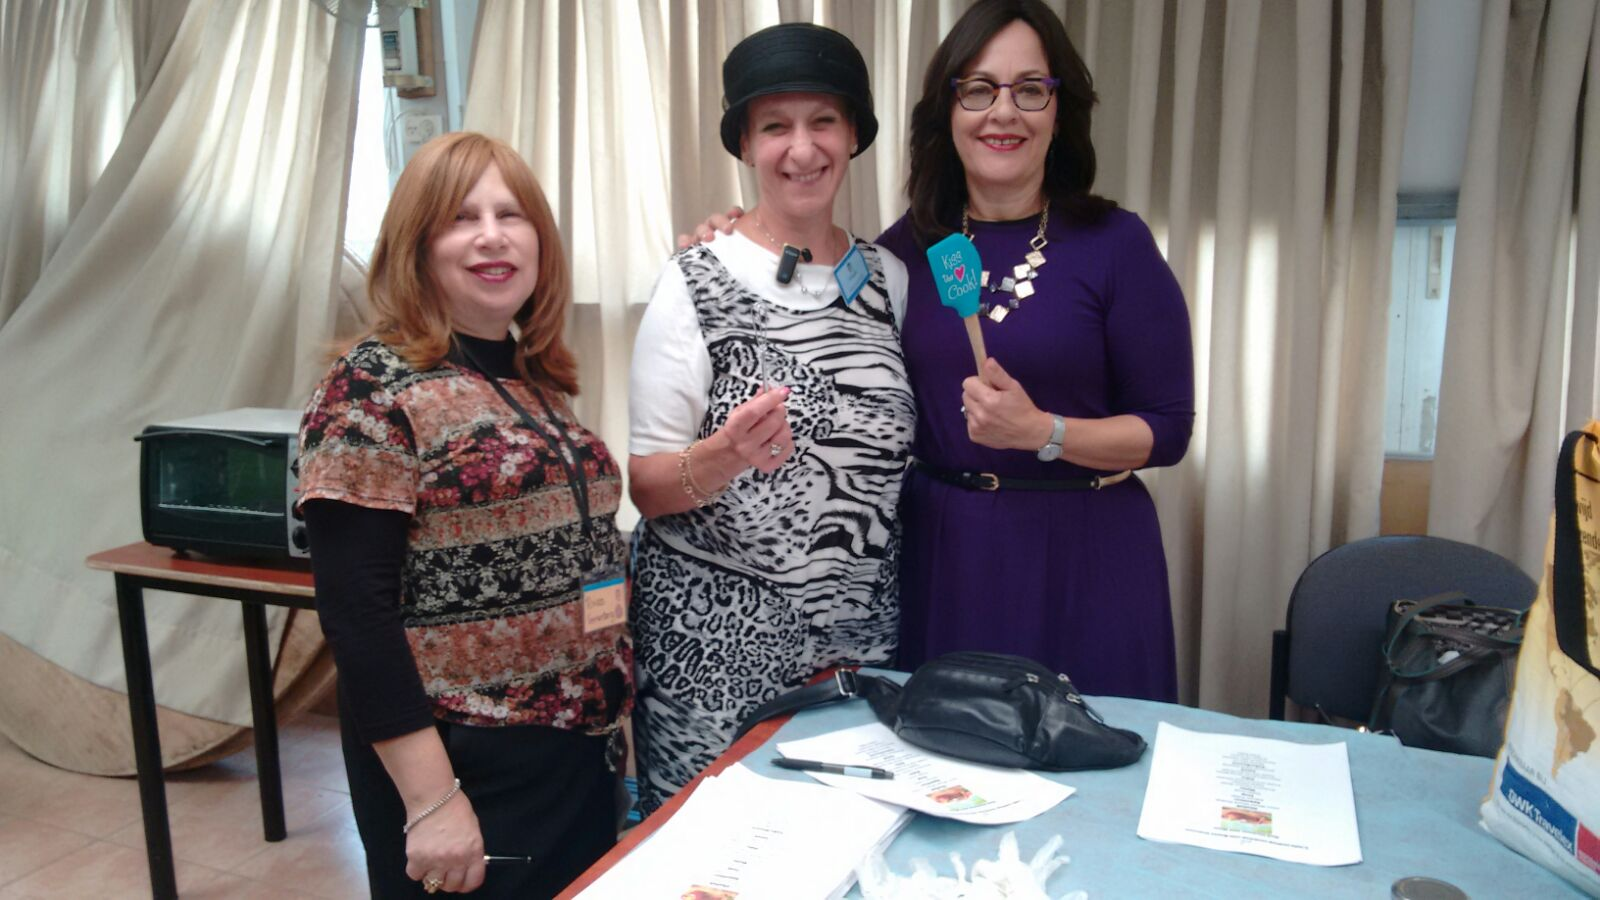 Shavuot Cooking Demo with Celebrity ChefBrynieGreisman and shiur with Sharona Halickman